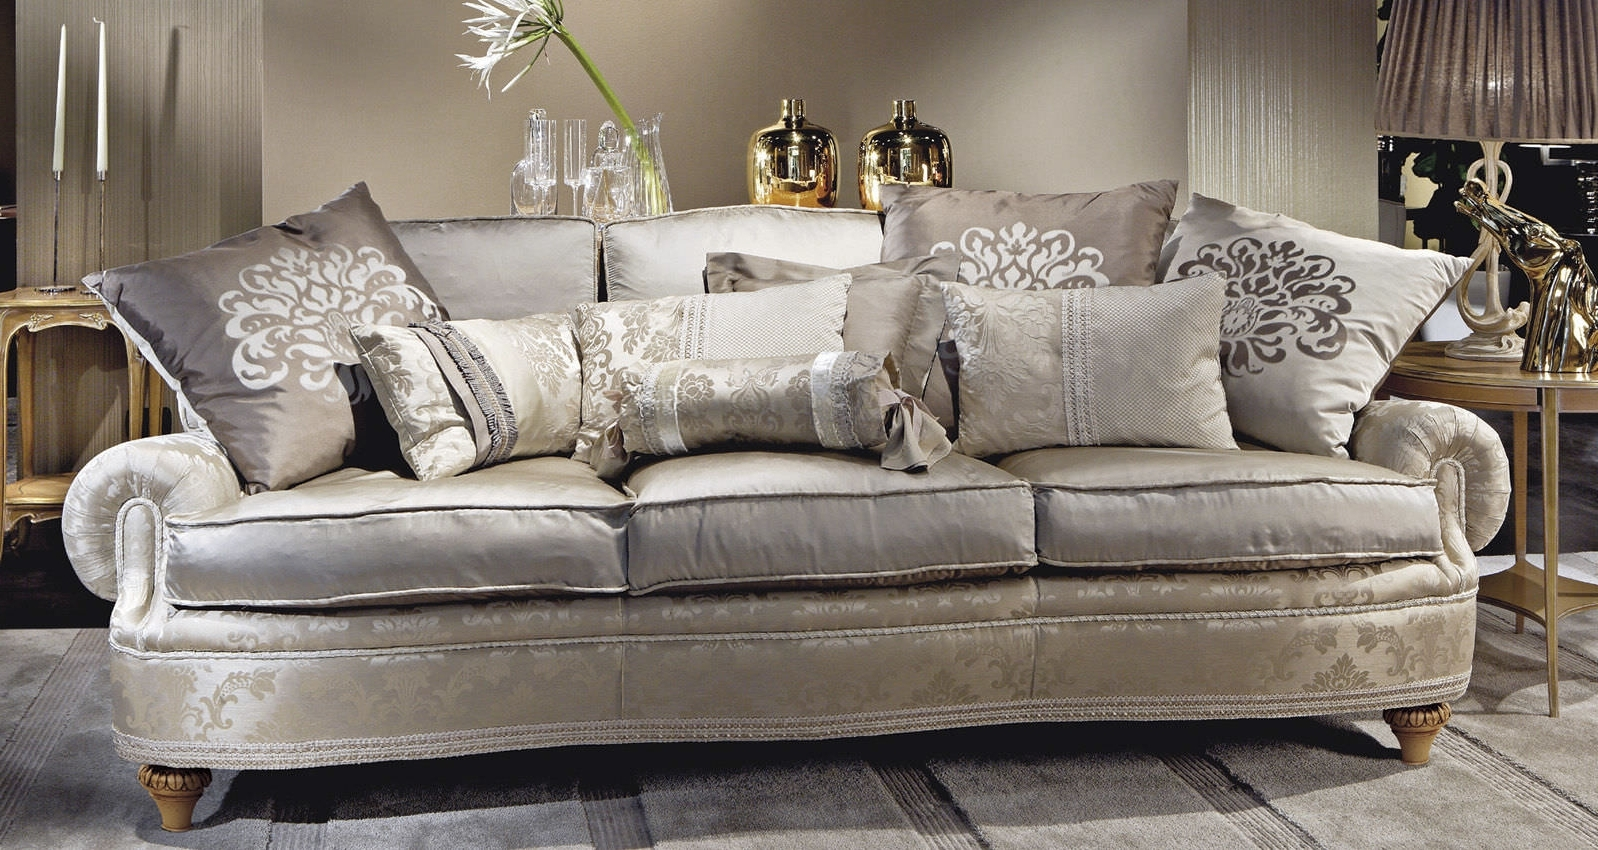 Epic Traditional Sofas 60 For Modern Sofa Inspiration With Regarding Well Known Traditional Sofas (Gallery 5 of 20)